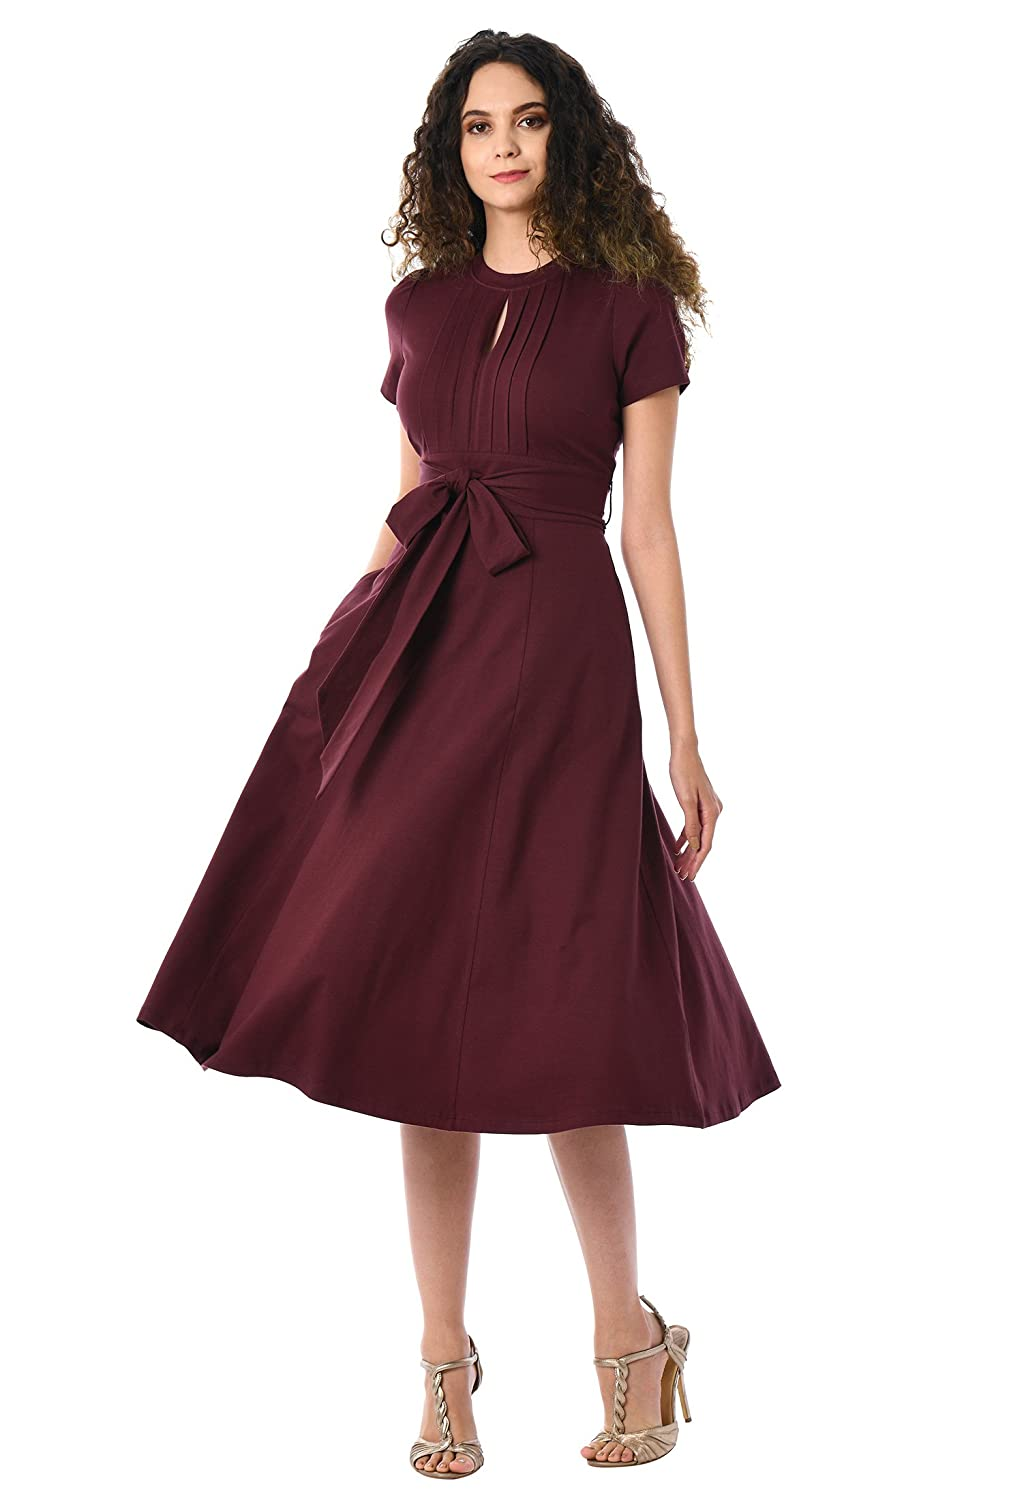 1940s Dresses | 40s Dress, Swing Dress eShakti Womens Tux Pleat Front Cotton Knit Dress $59.95 AT vintagedancer.com